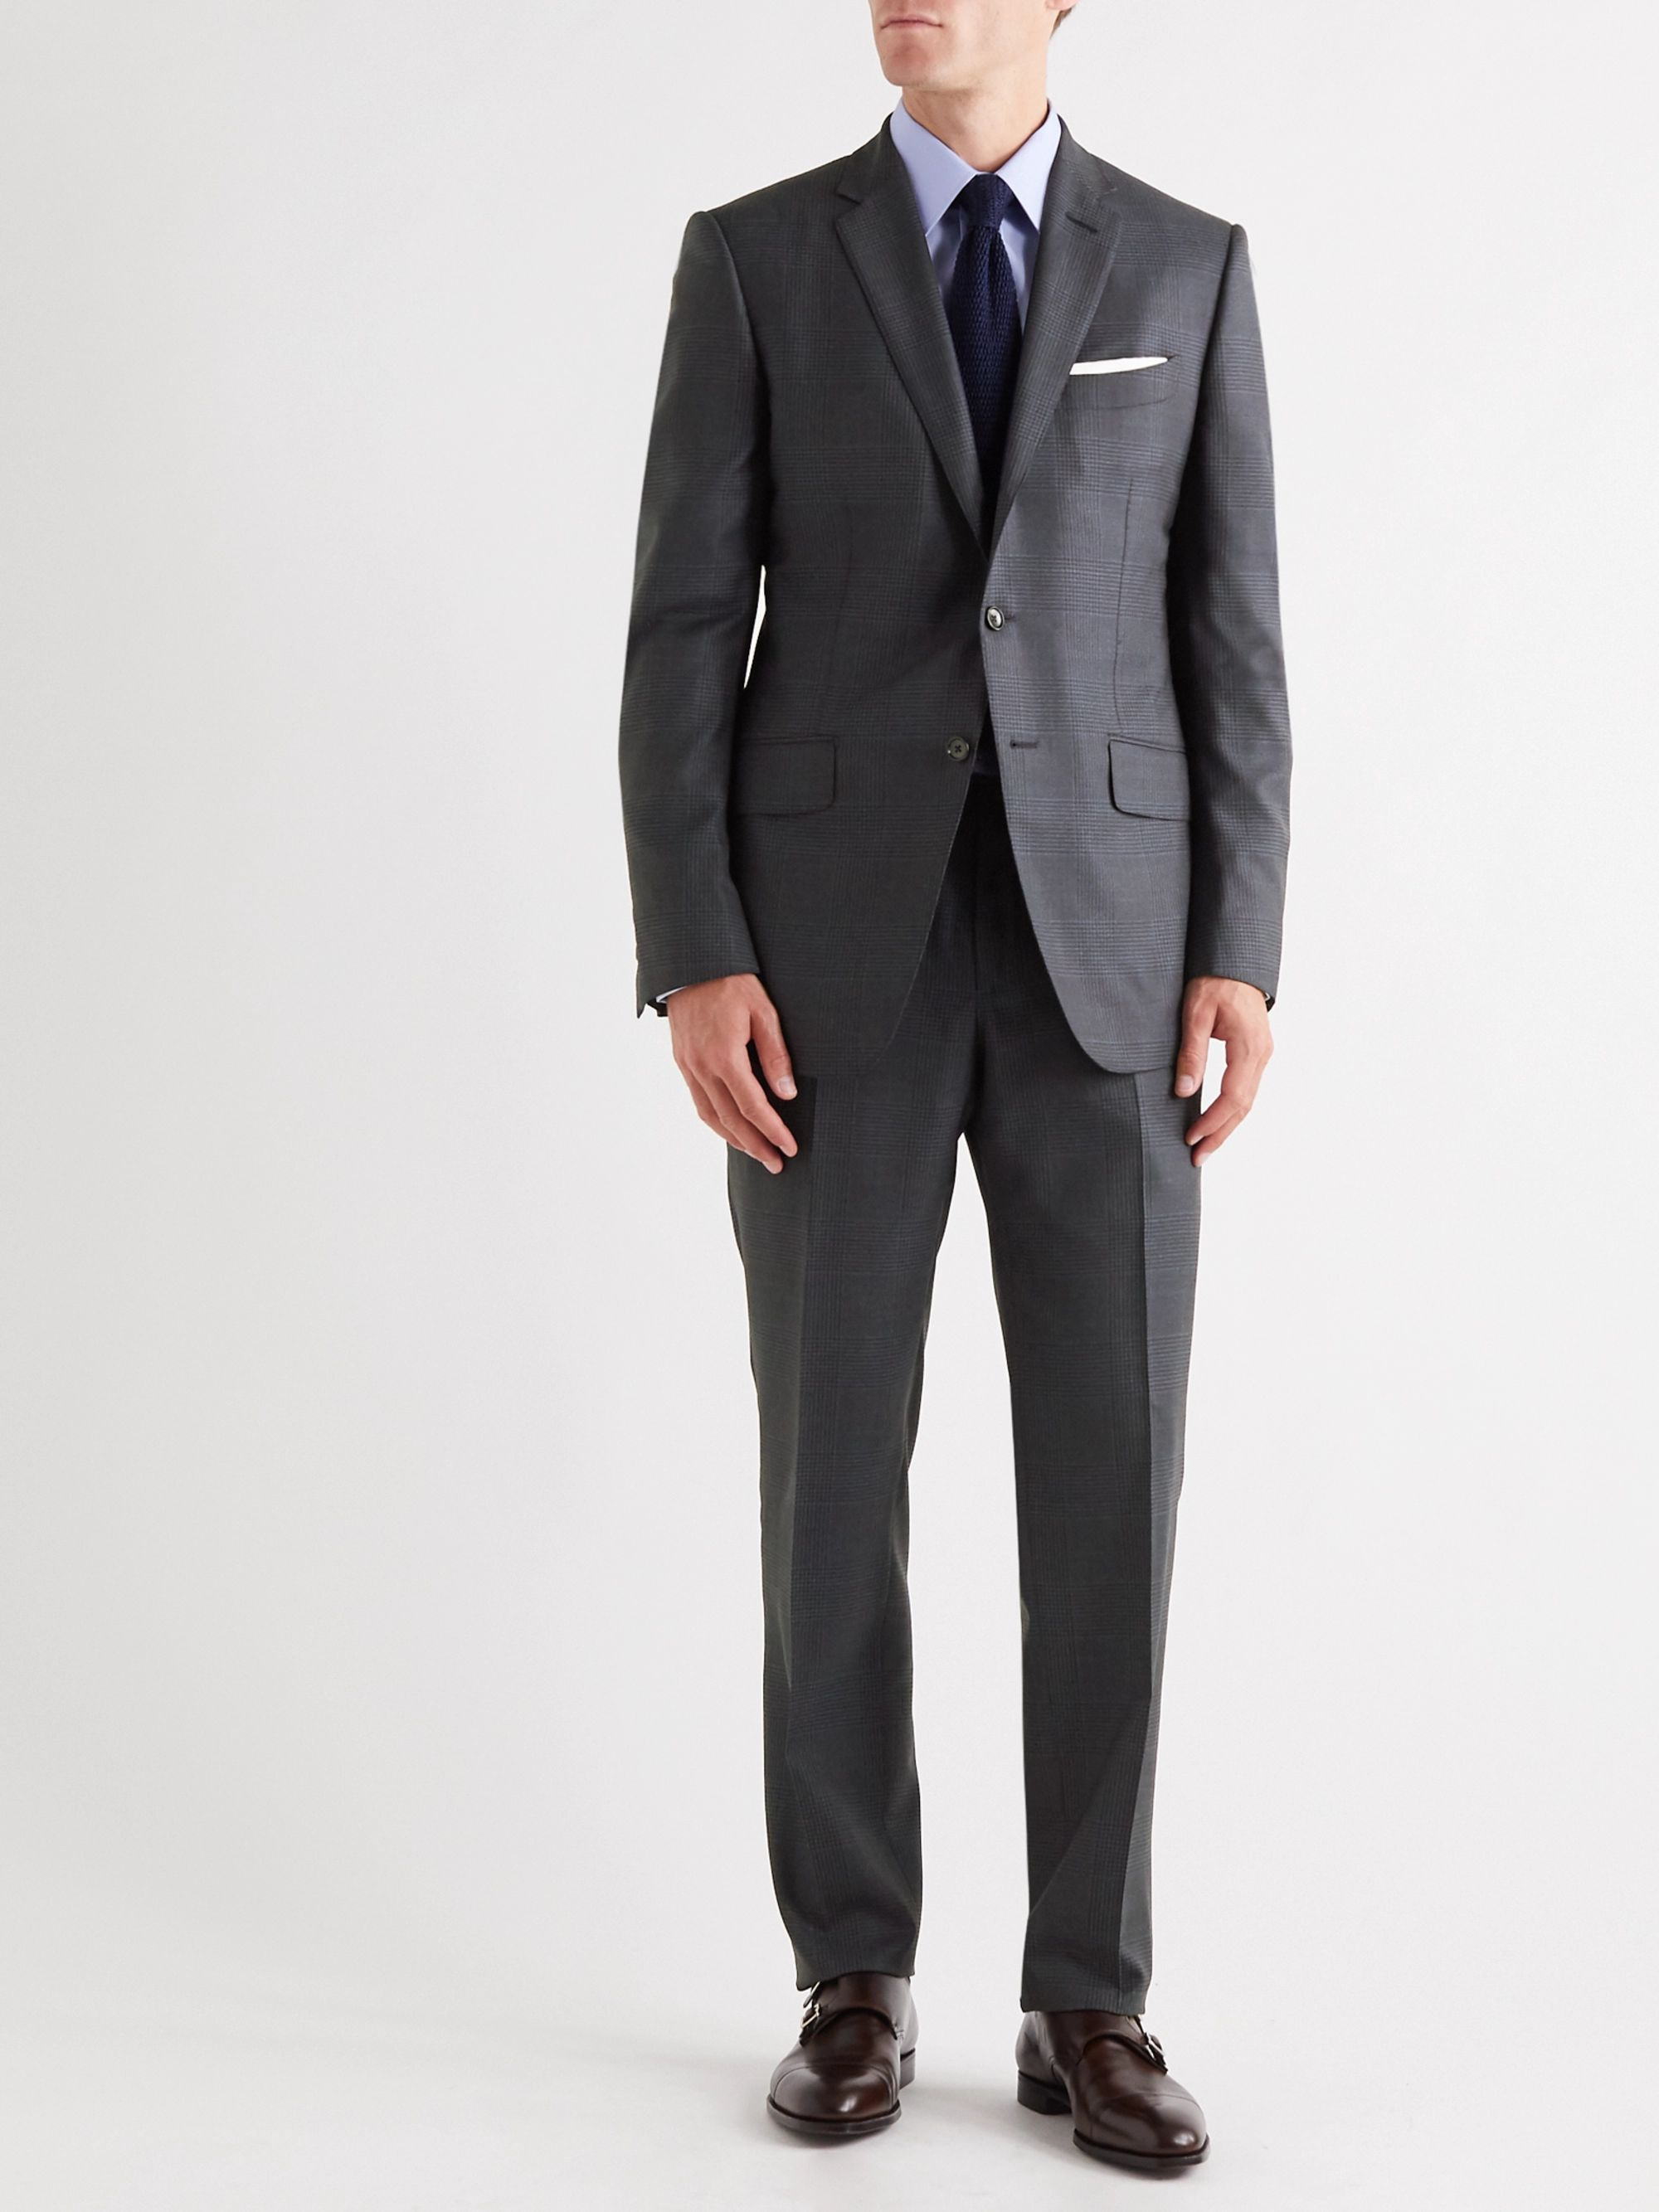 TOM FORD O'Connor Slim-Fit Prince of Wales Checked Wool and Silk-Blend Suit Jacket